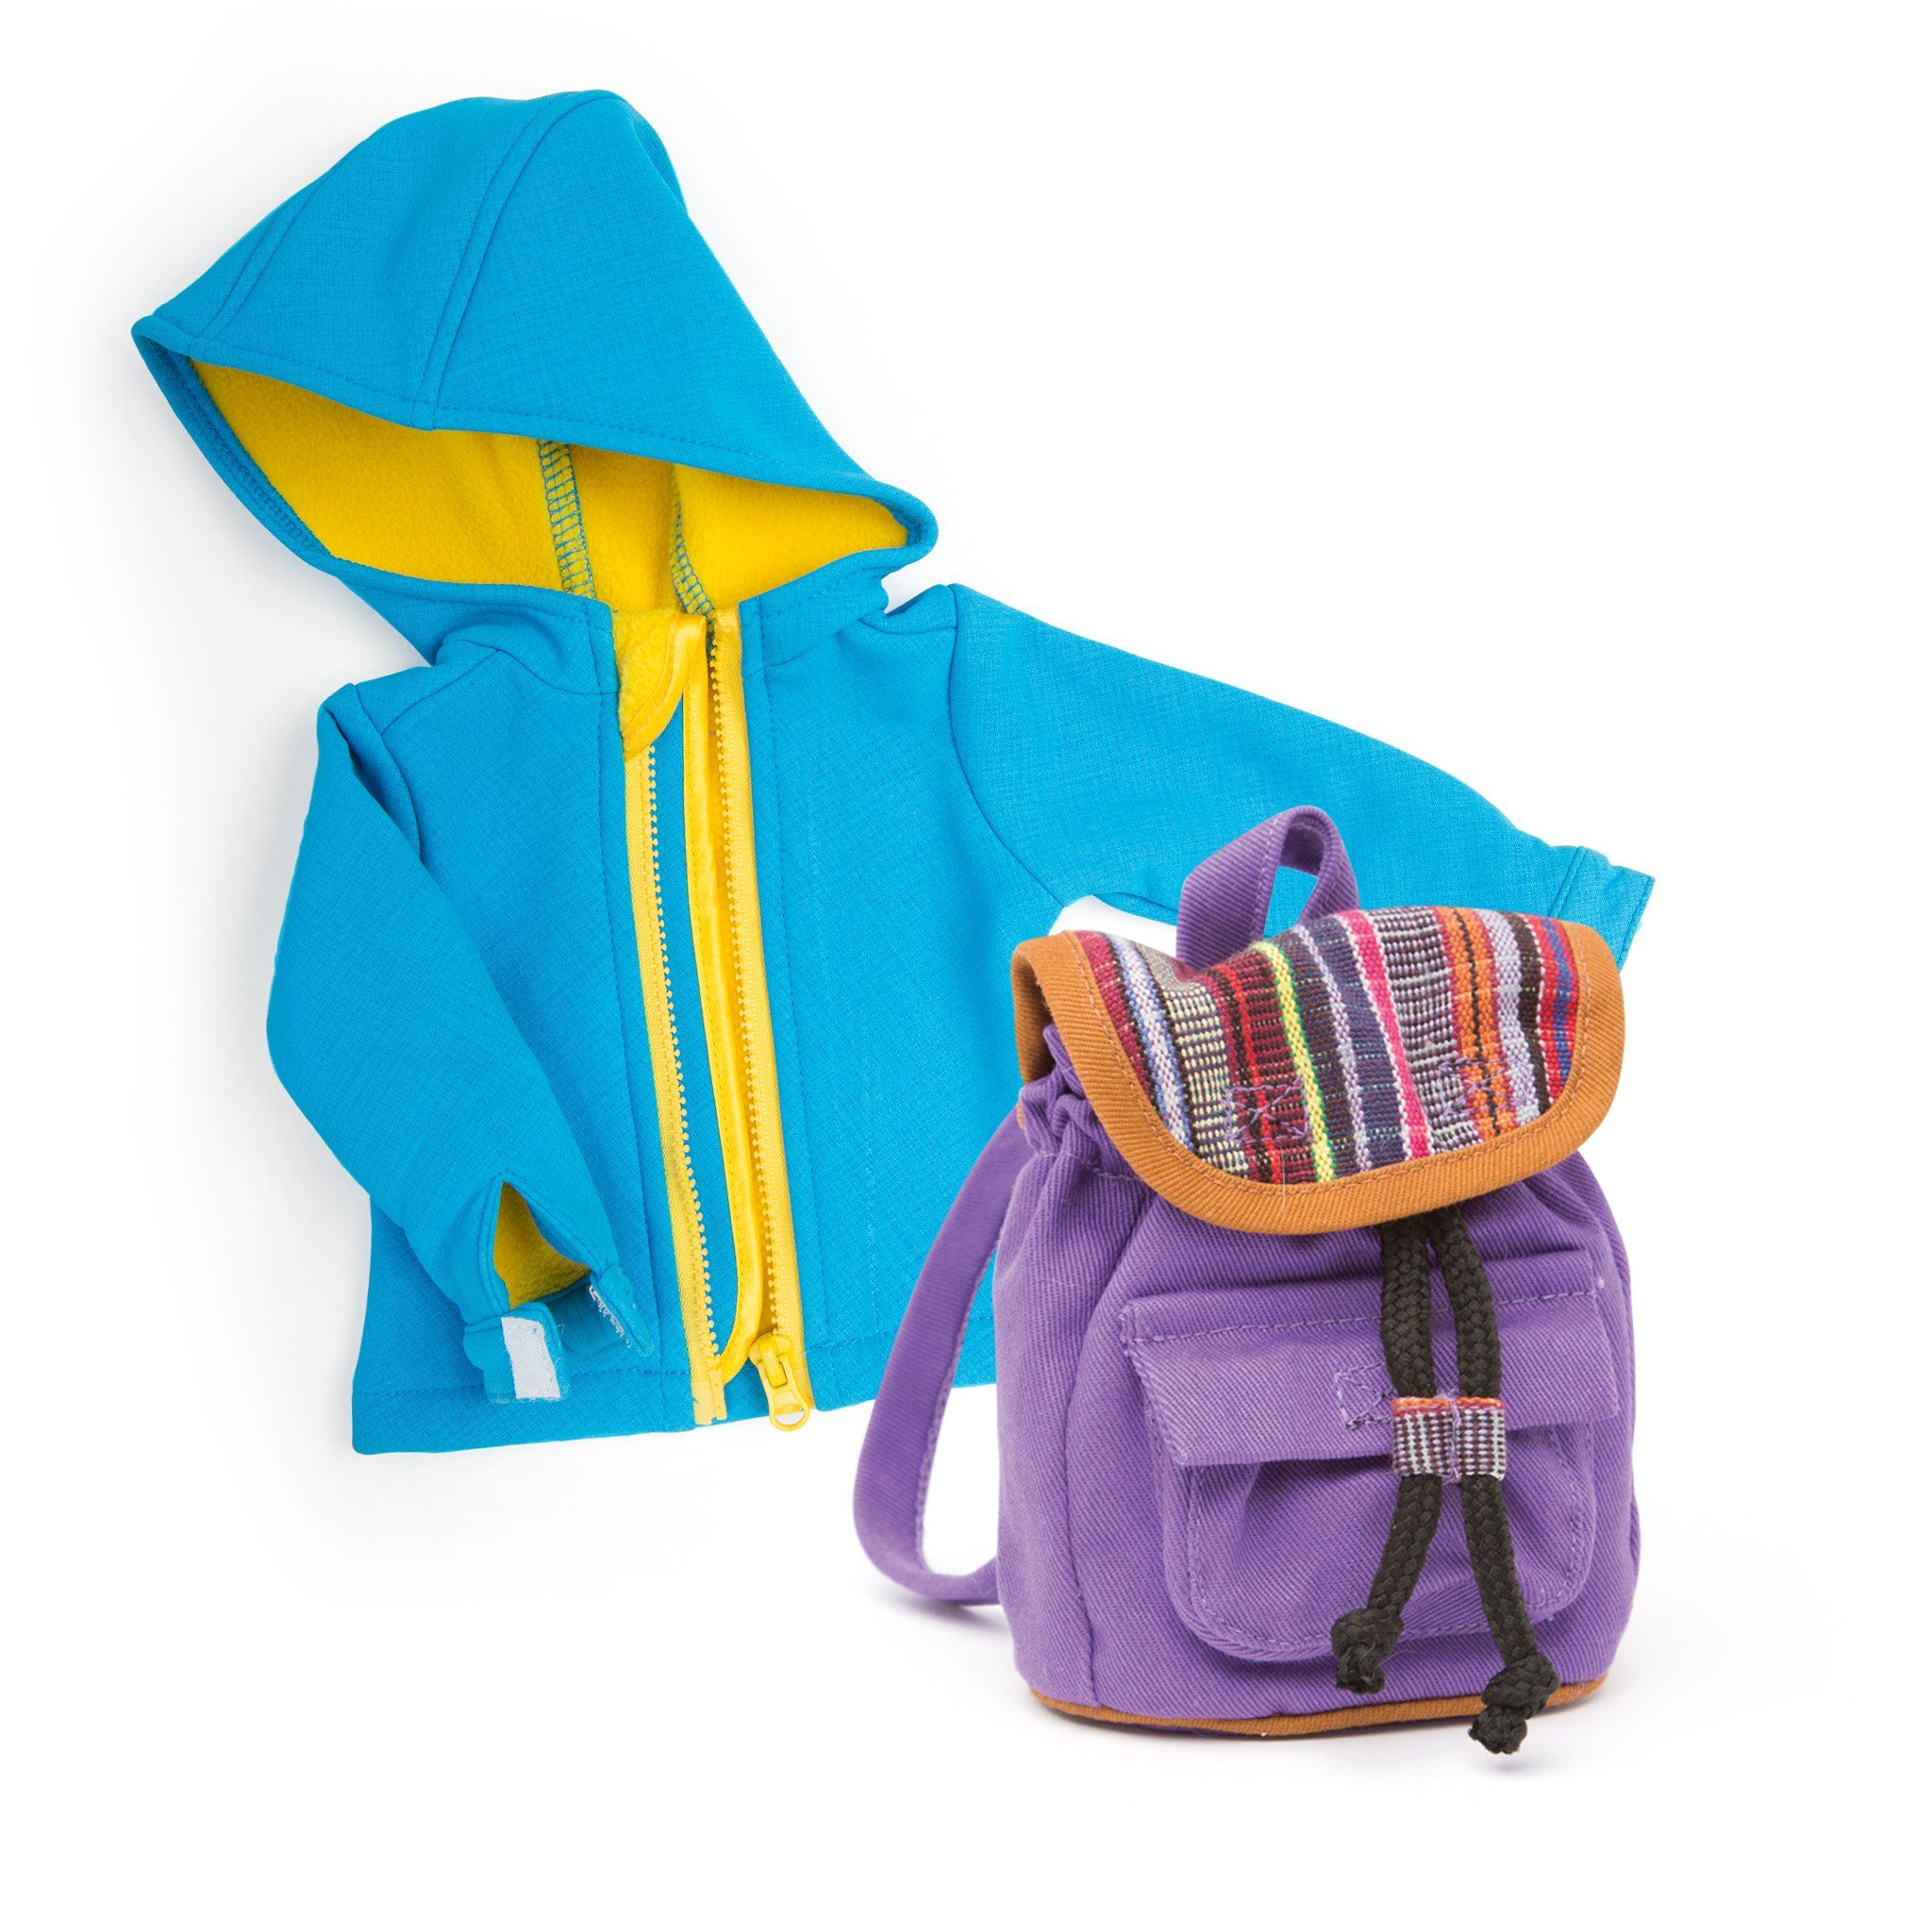 Rain coat and rucksack for 18 inch dolls.